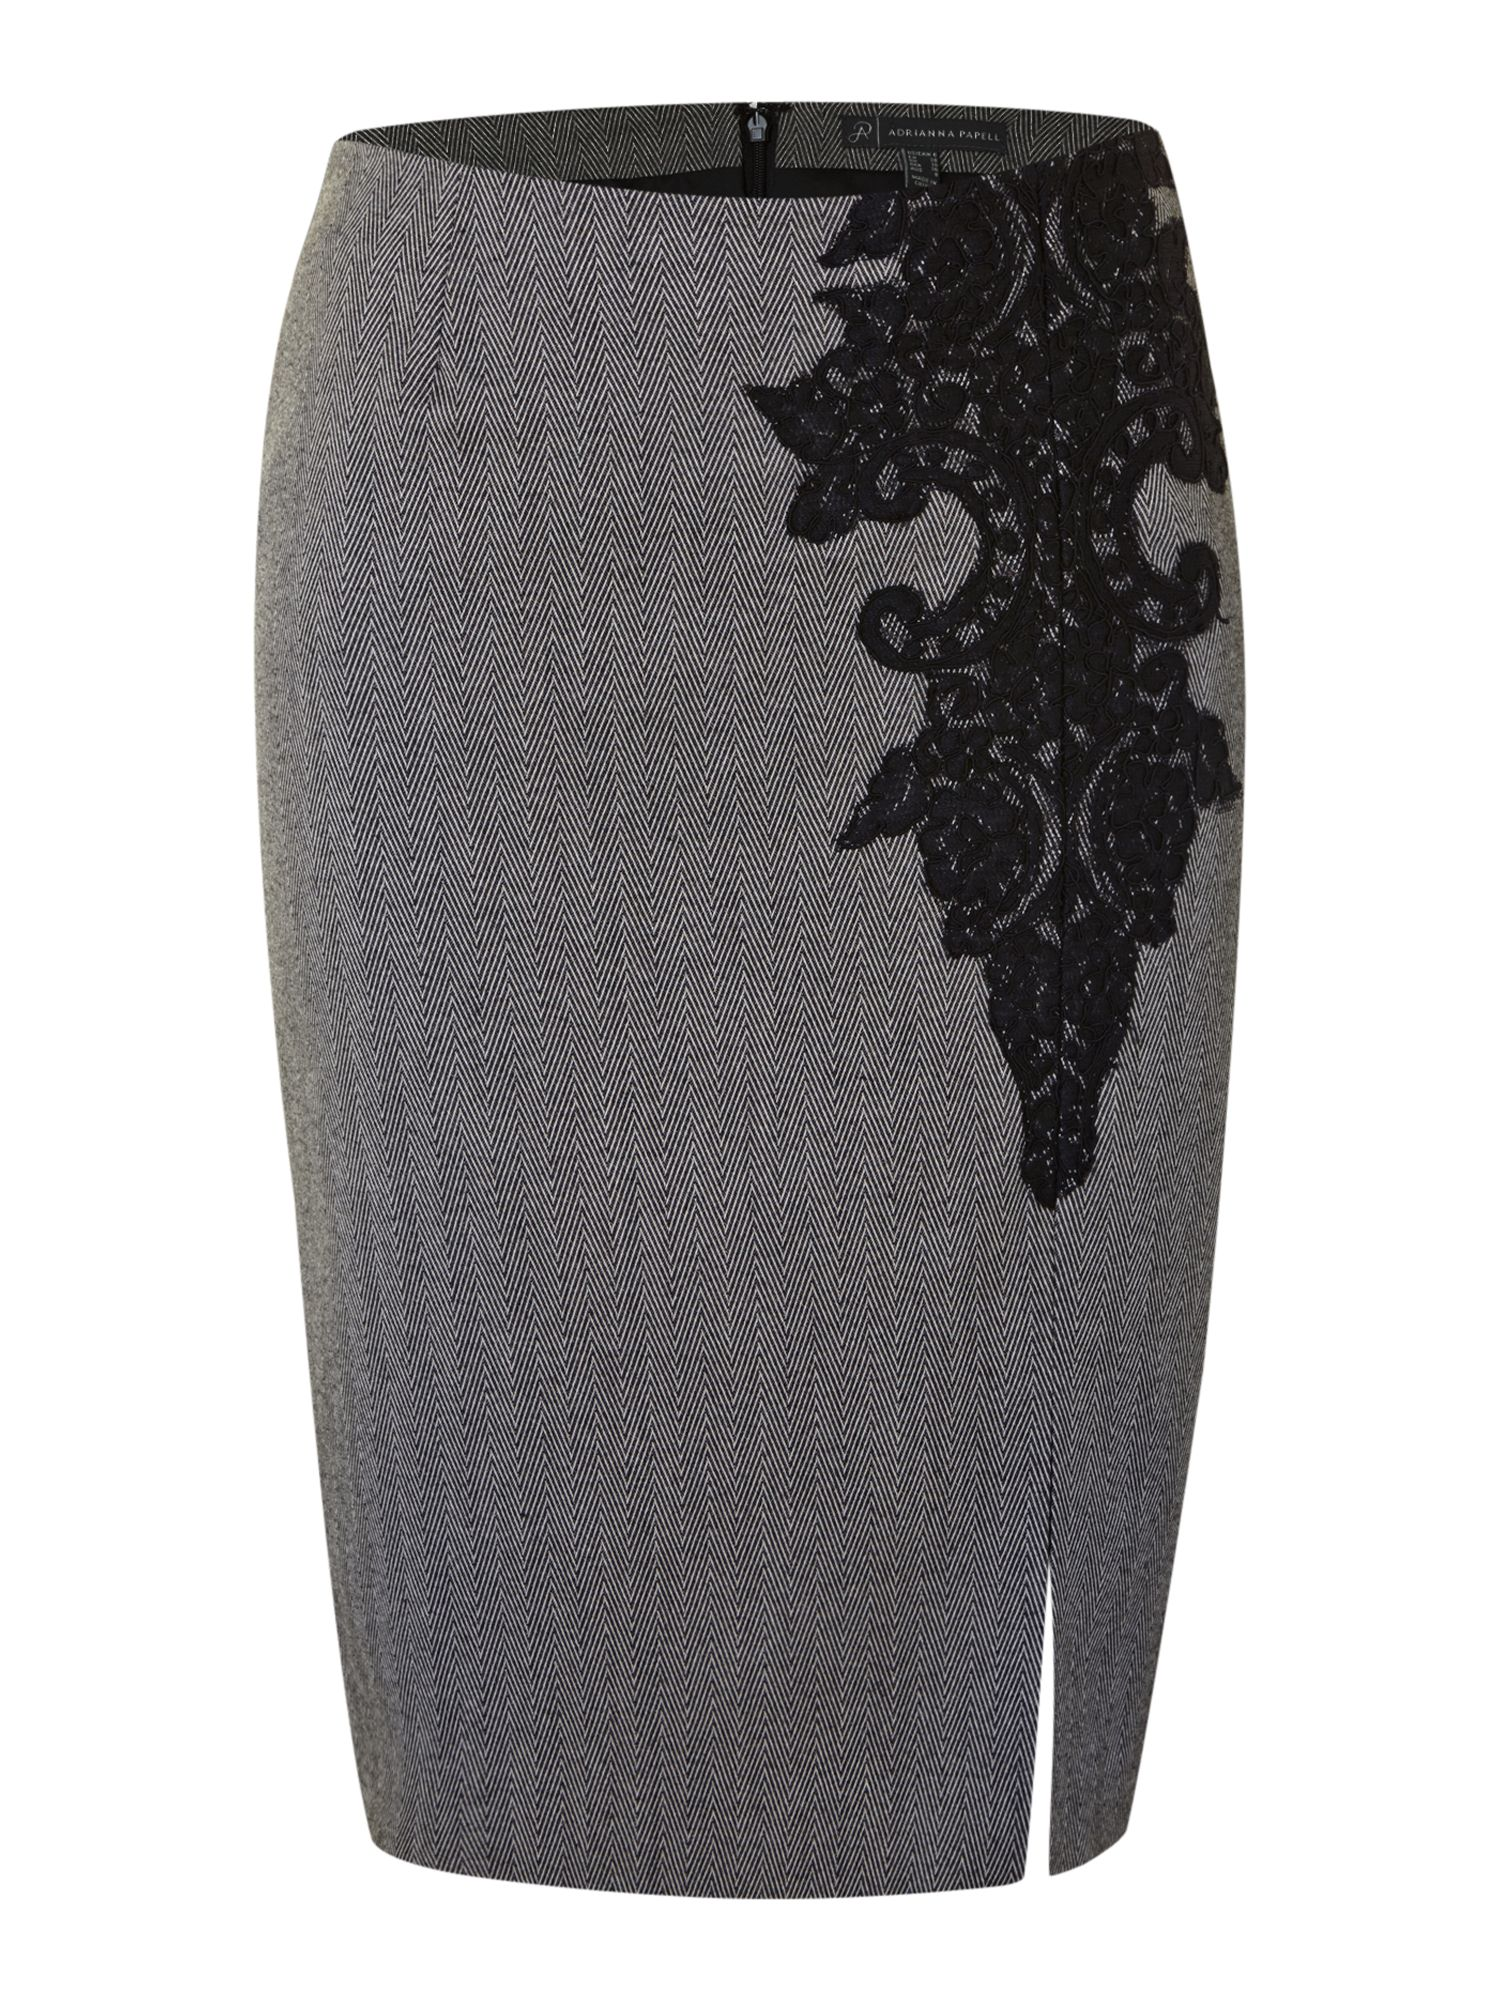 Lace Trim Pencil Skirt